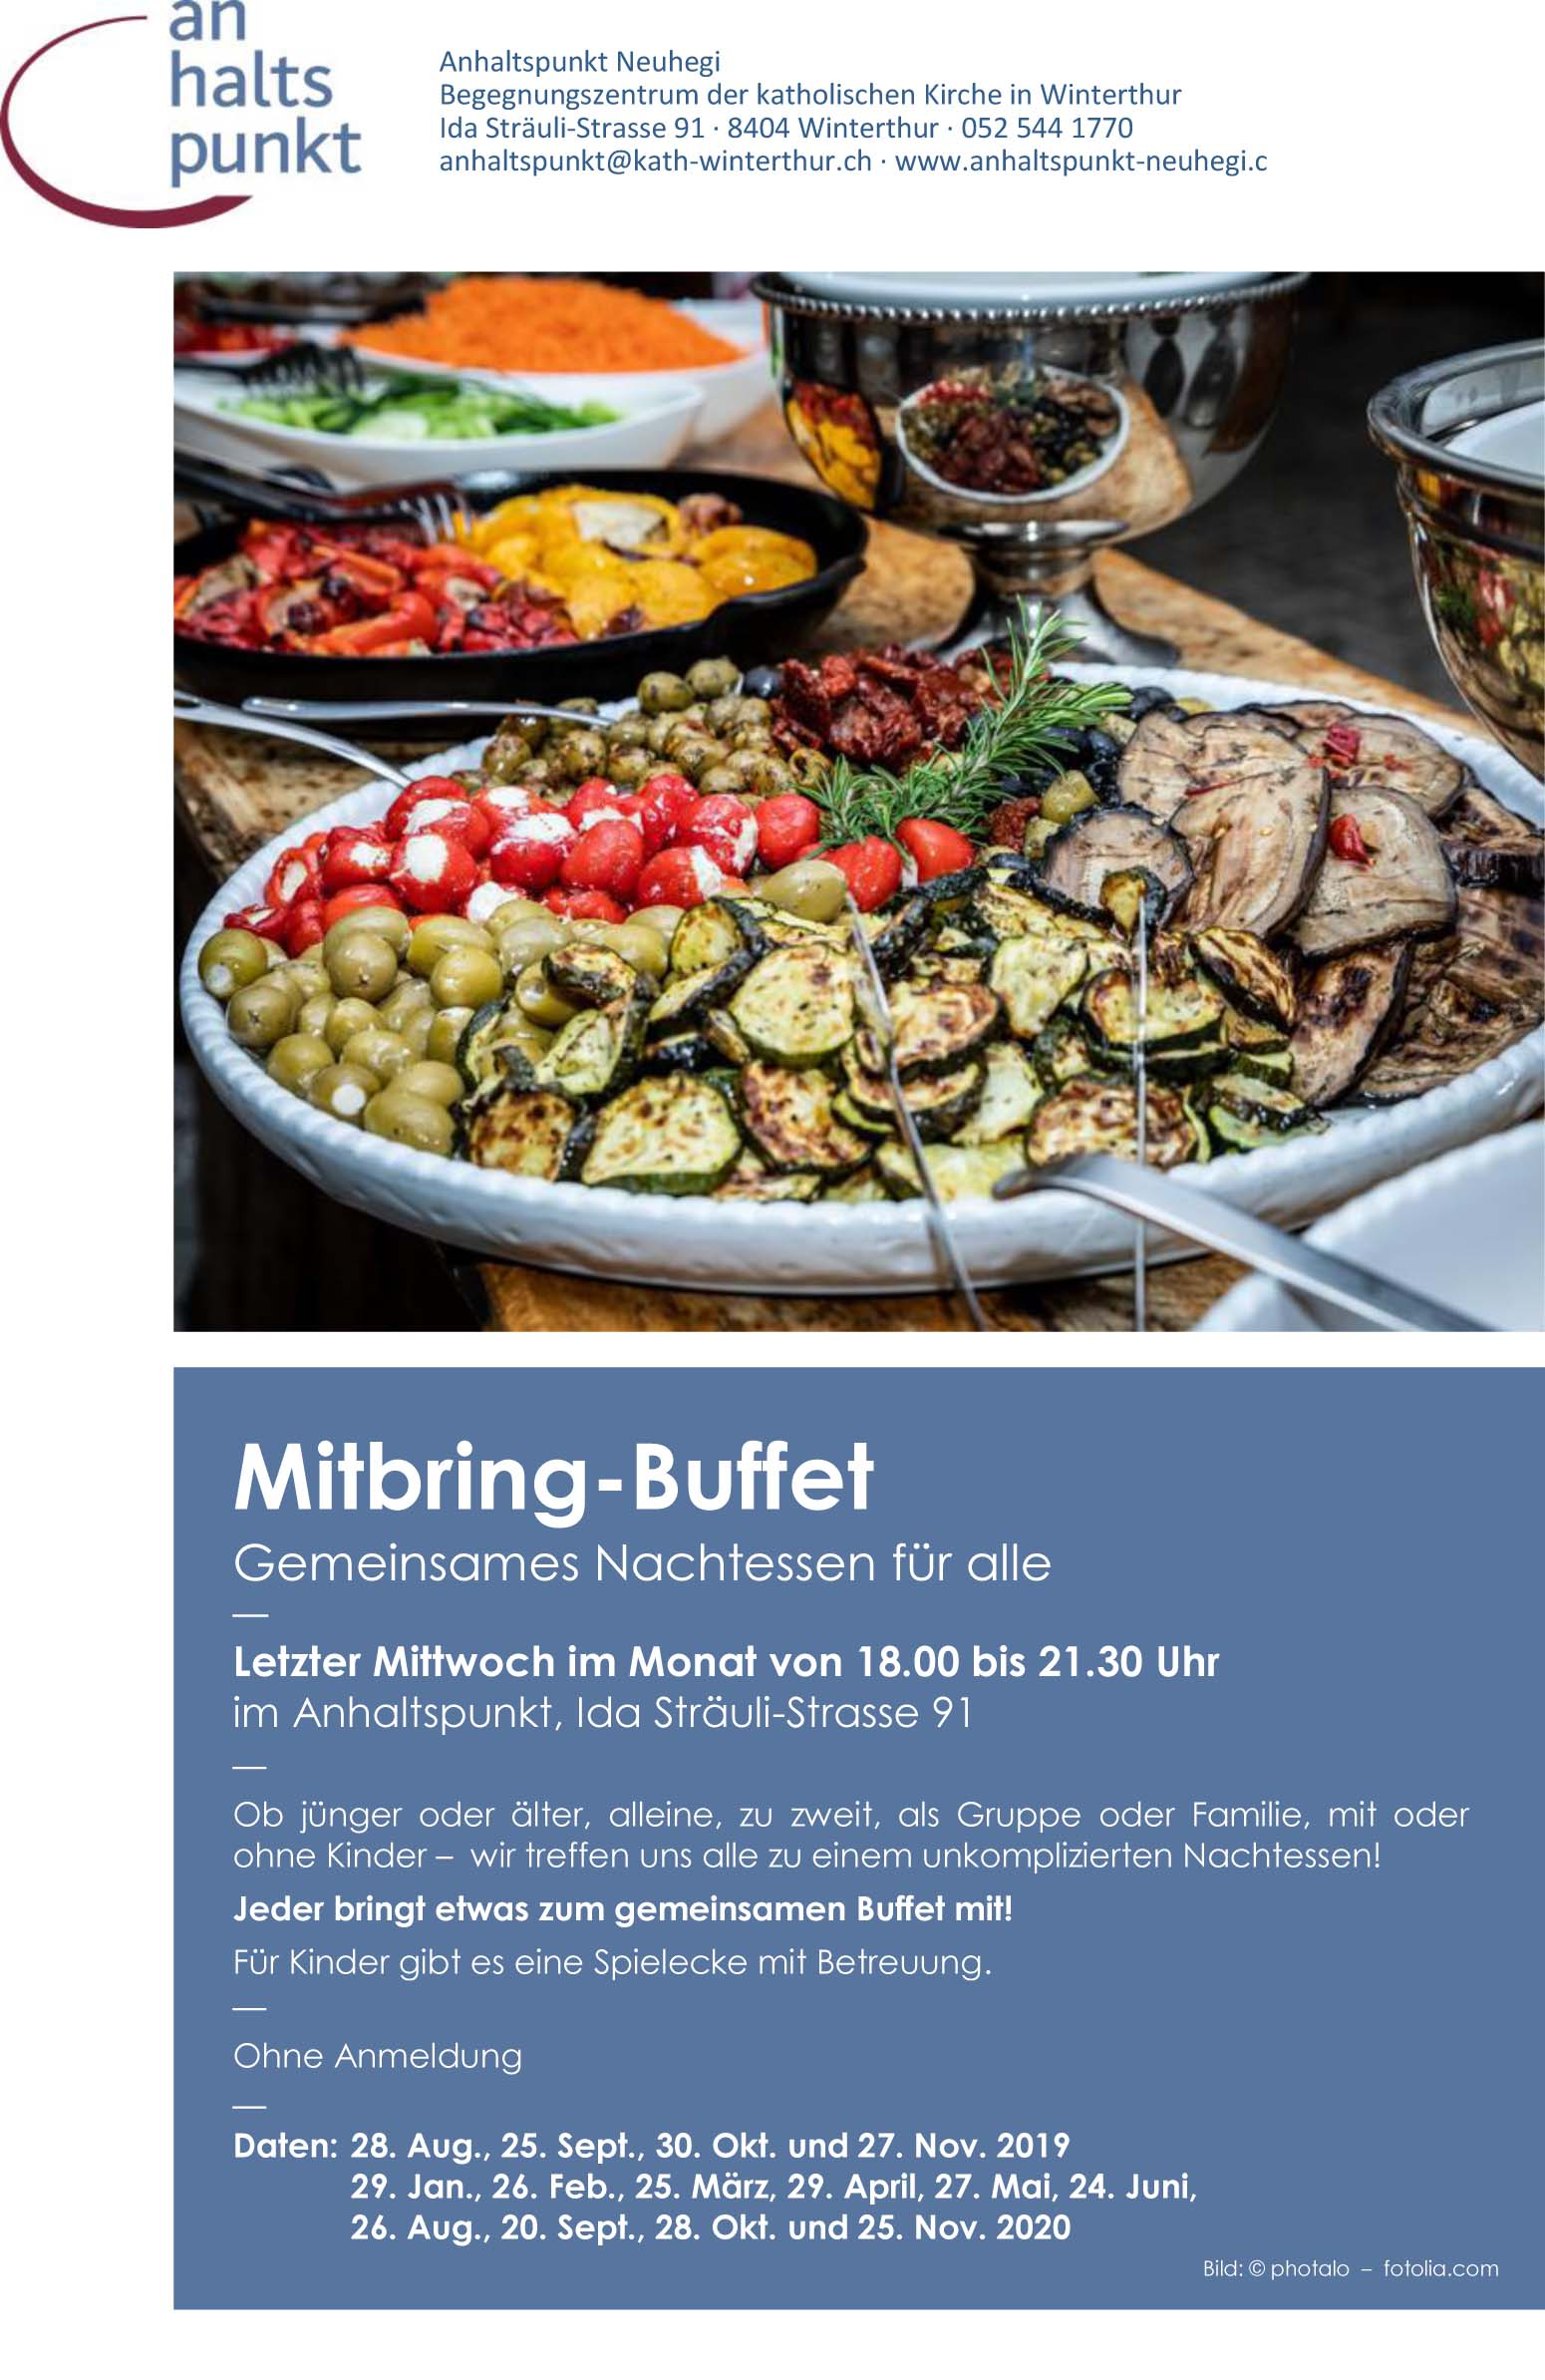 agh Mitbring Buffet 19 20